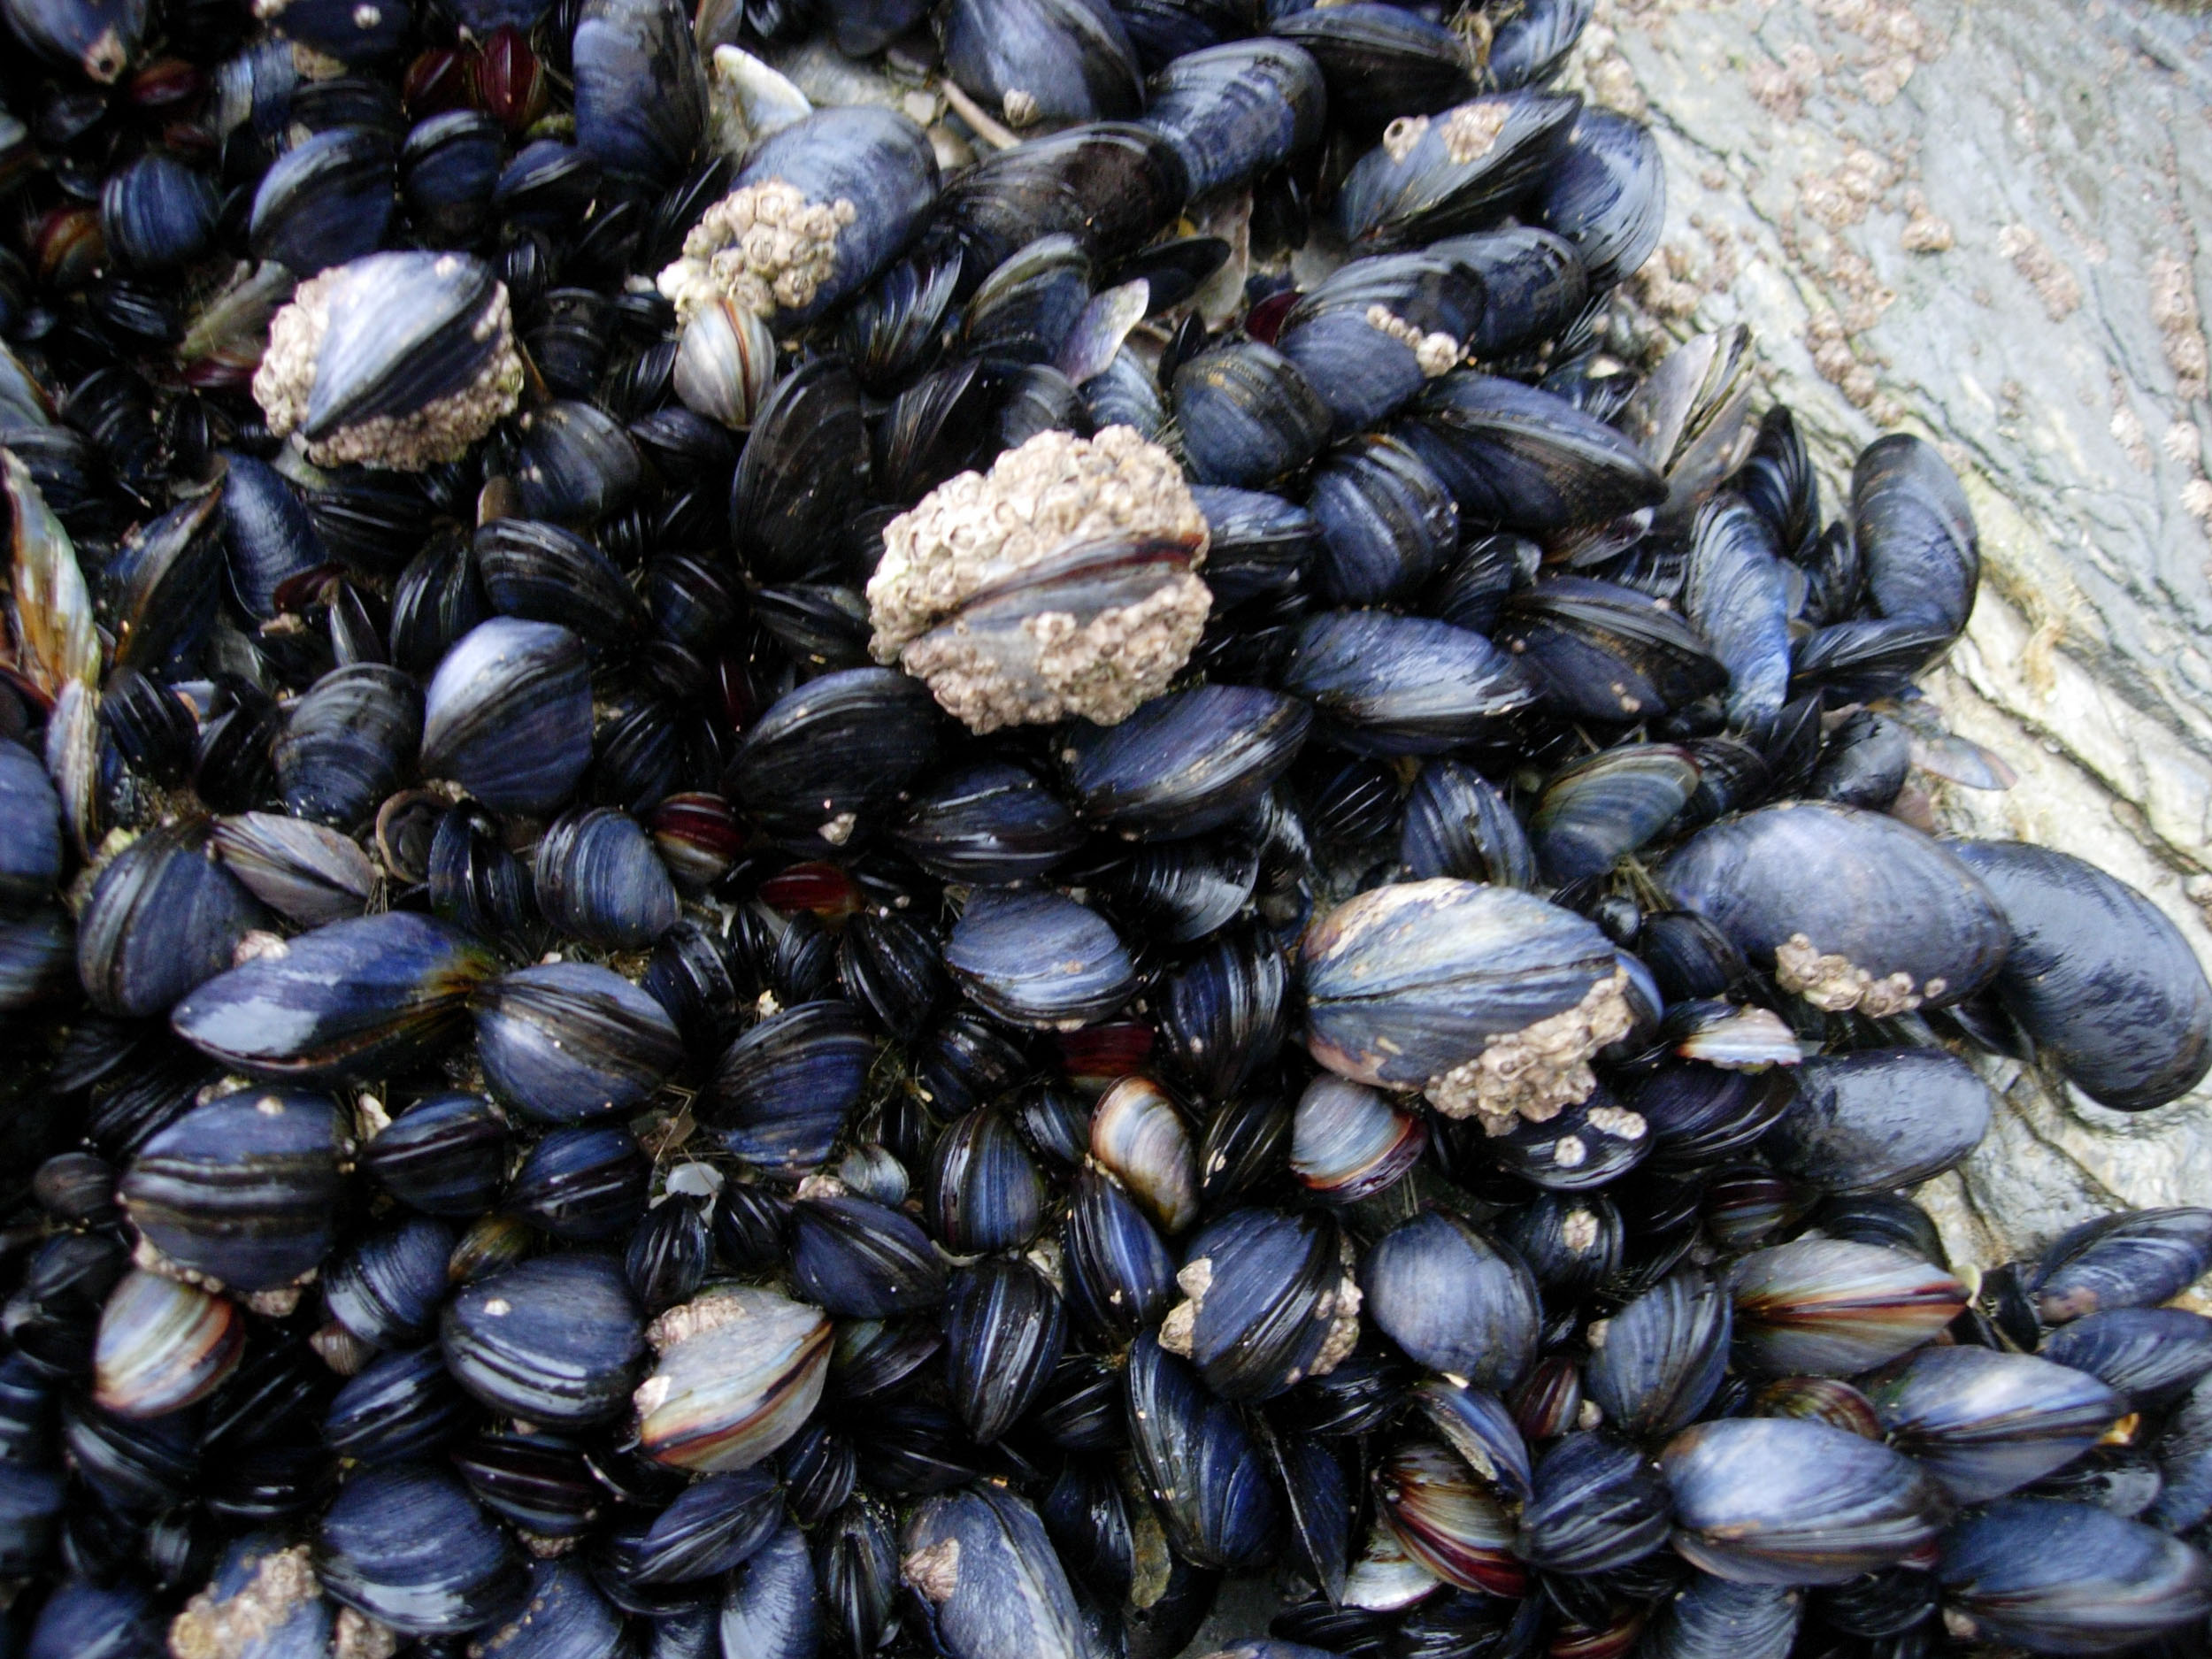 Thousands of fresh West Cork mussels recalled due to high toxins